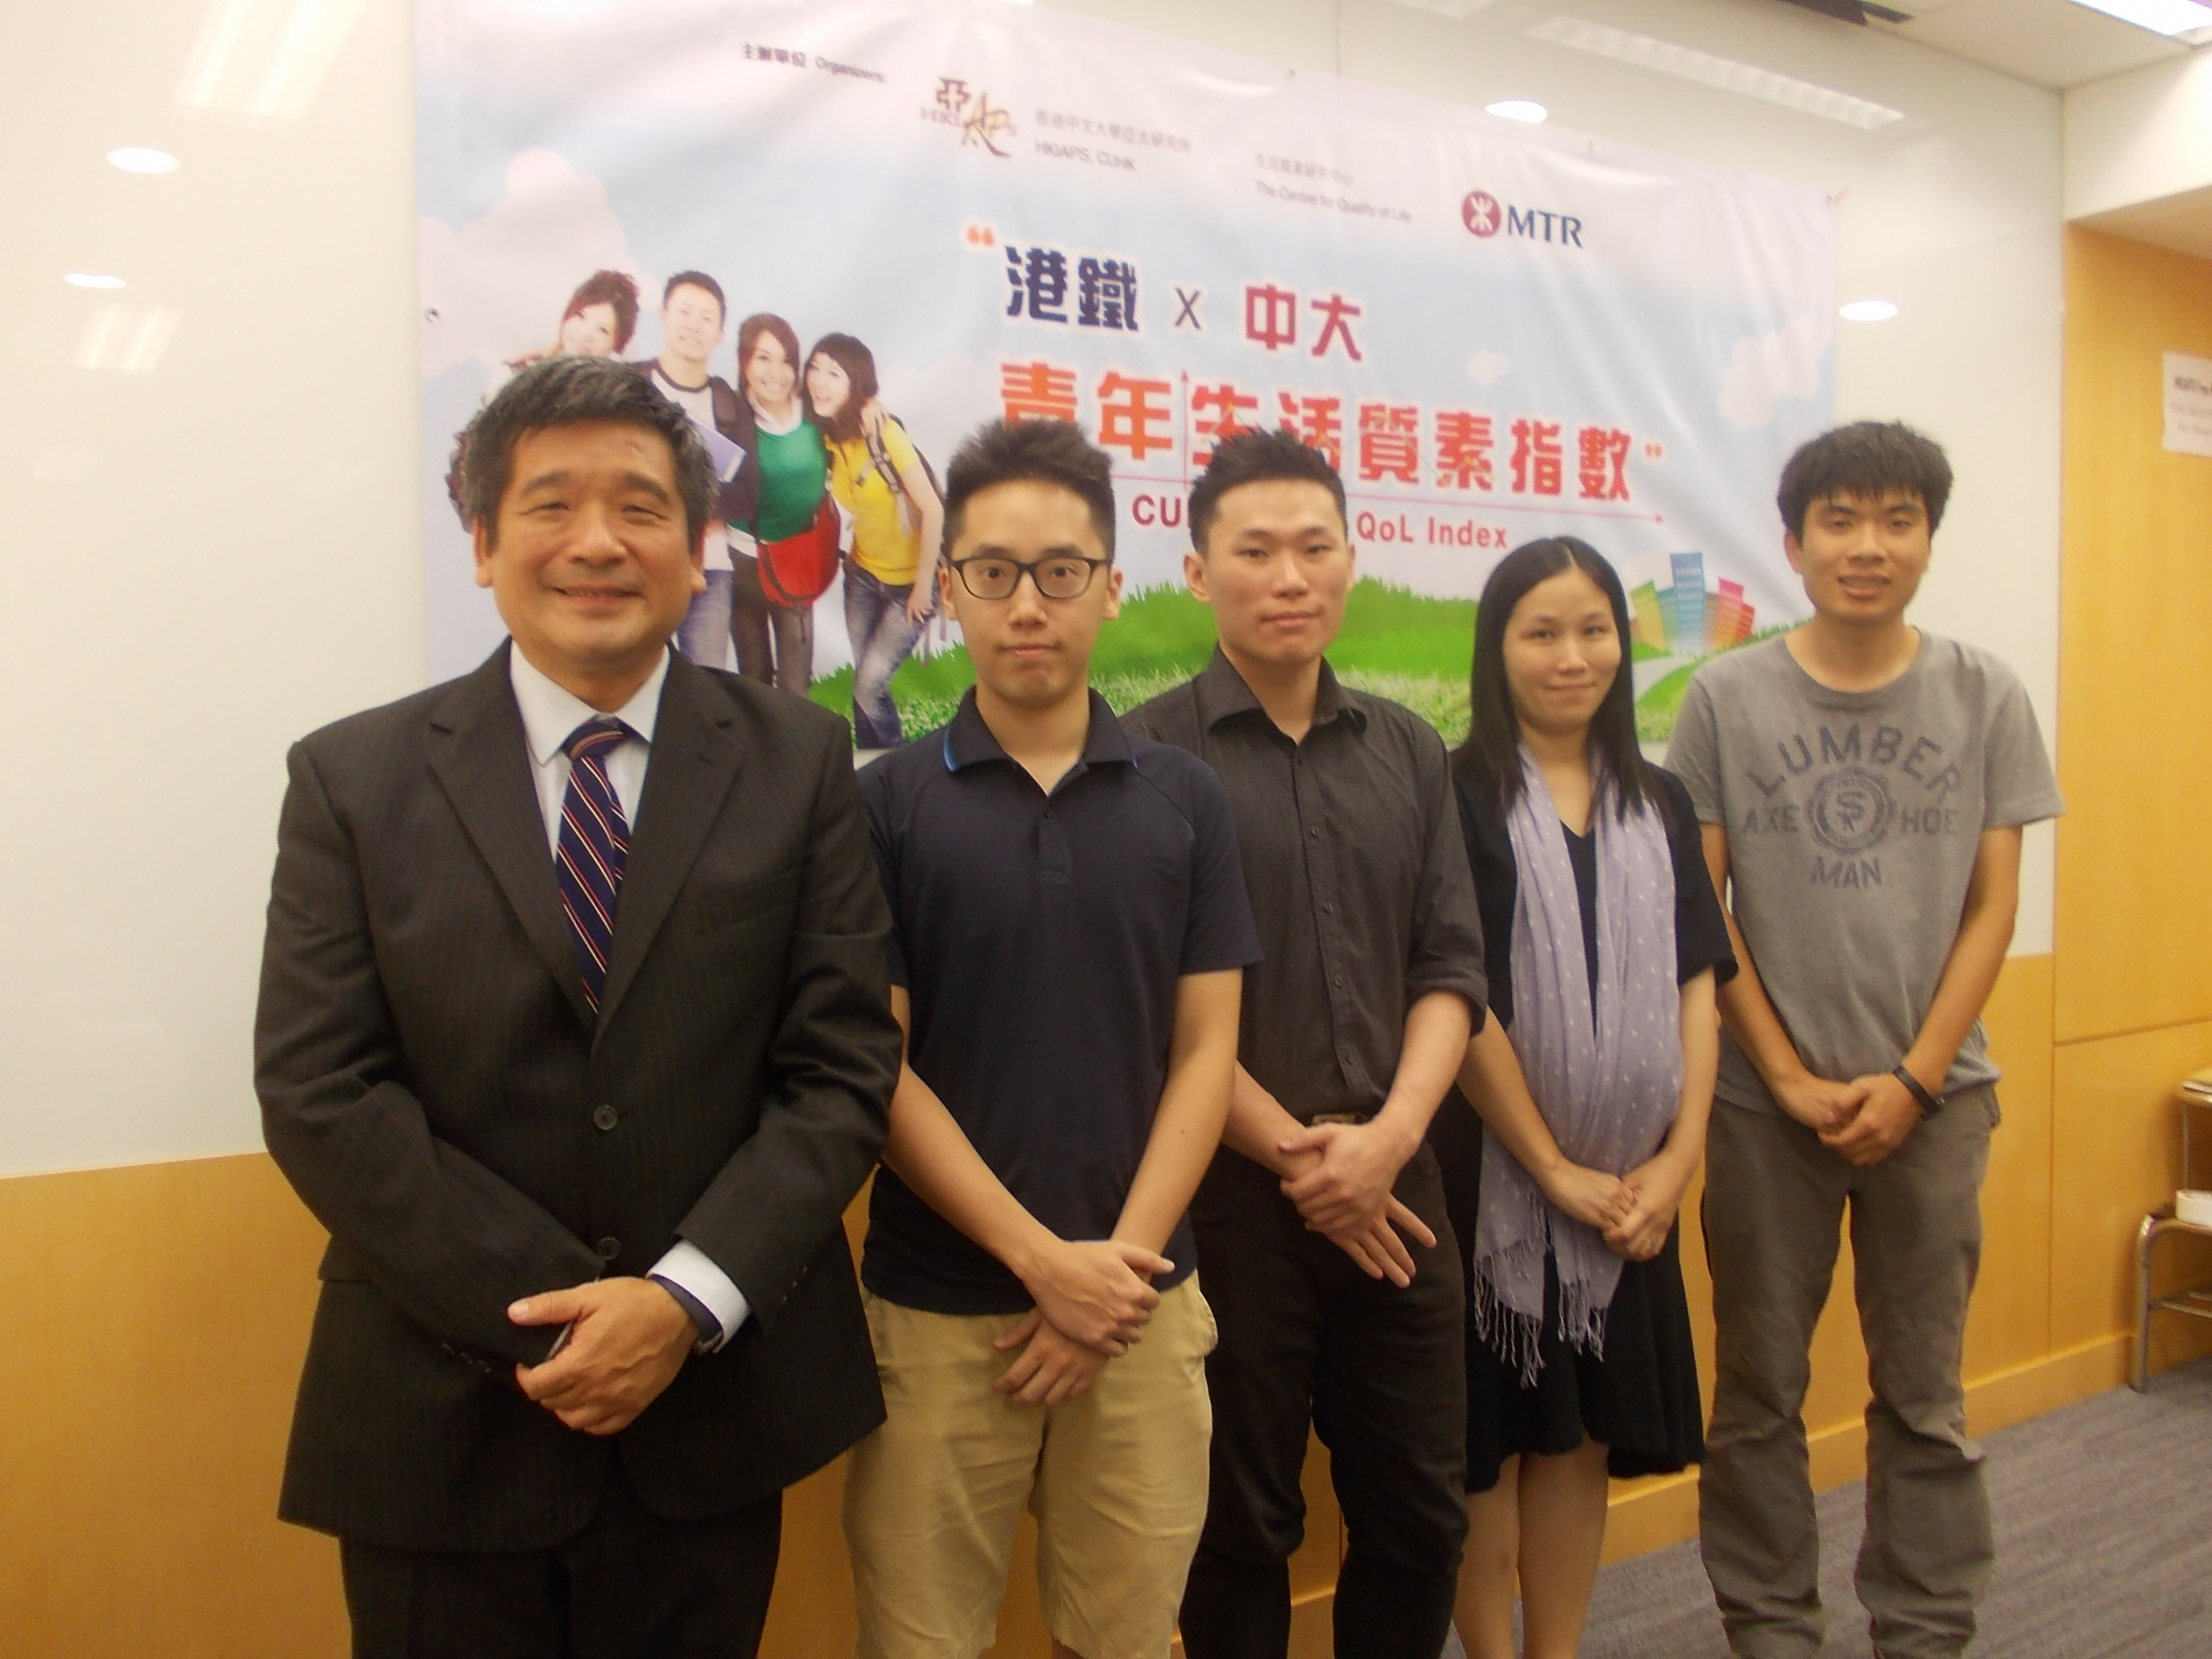 Prof. Wong Hung, Director of the Centre for Quality of Life, CUHK (left) releases the latest MTR-CUHK Youth Quality of Life Index.